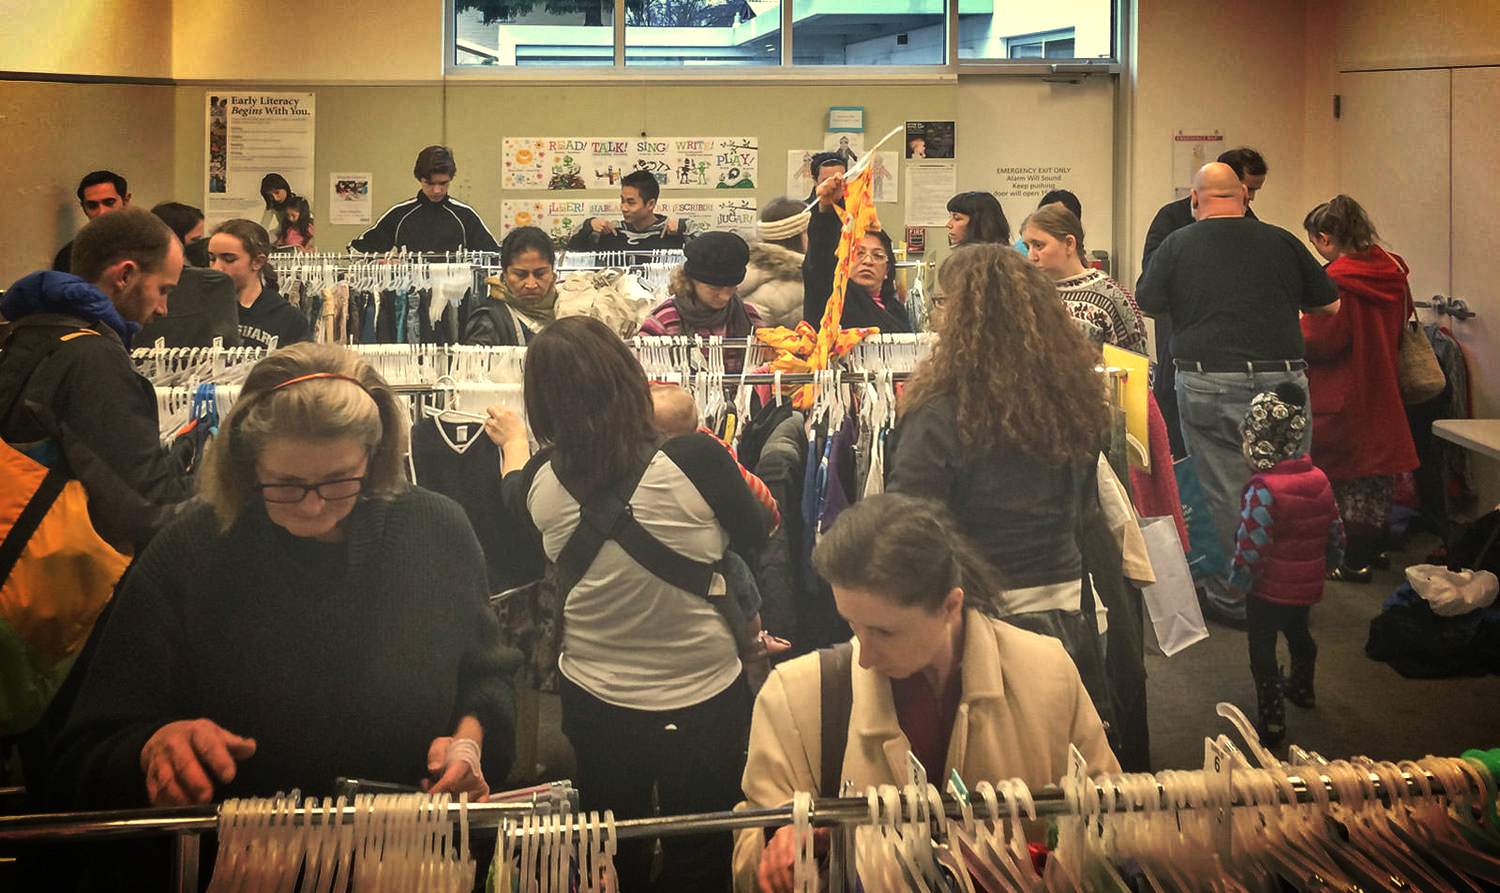 Friendly exchangers fill the community room at North Portland's Kenton Library for the first Free Clothing Exchange of 2015.